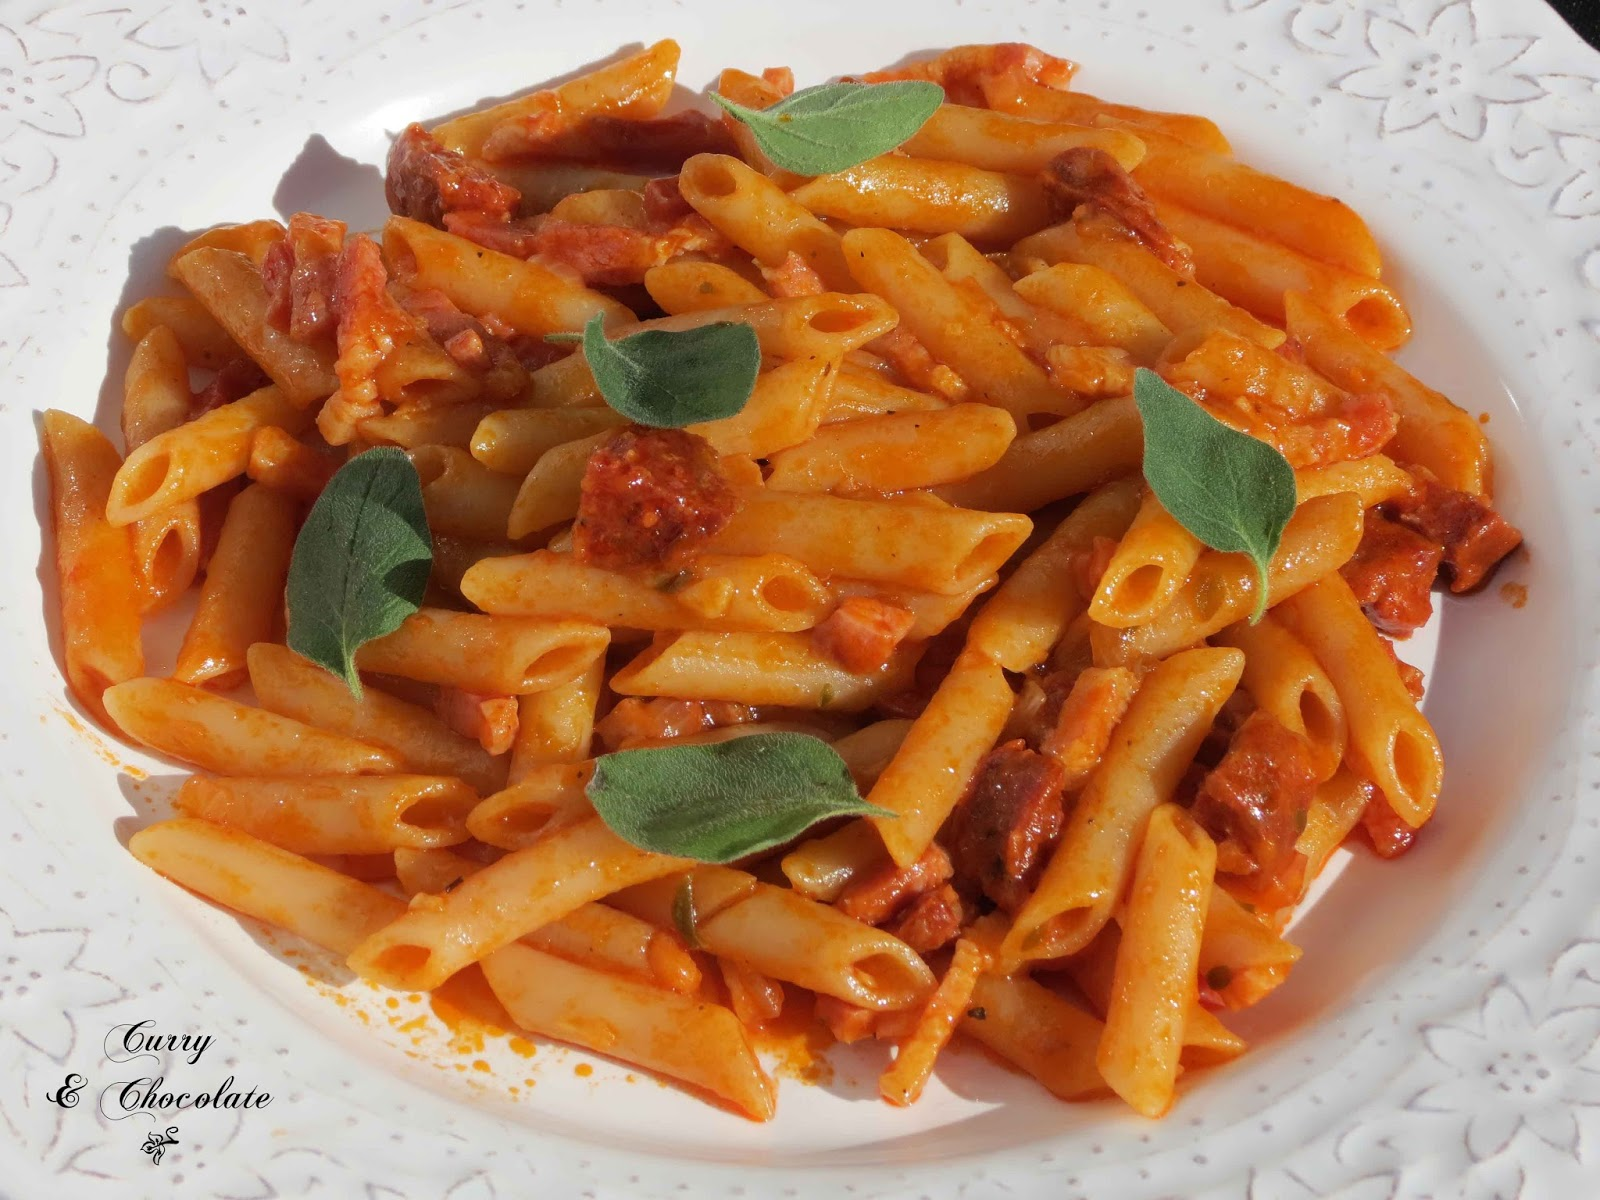 Macarrones con chorizo y bacon – Chorizo and bacon pasta